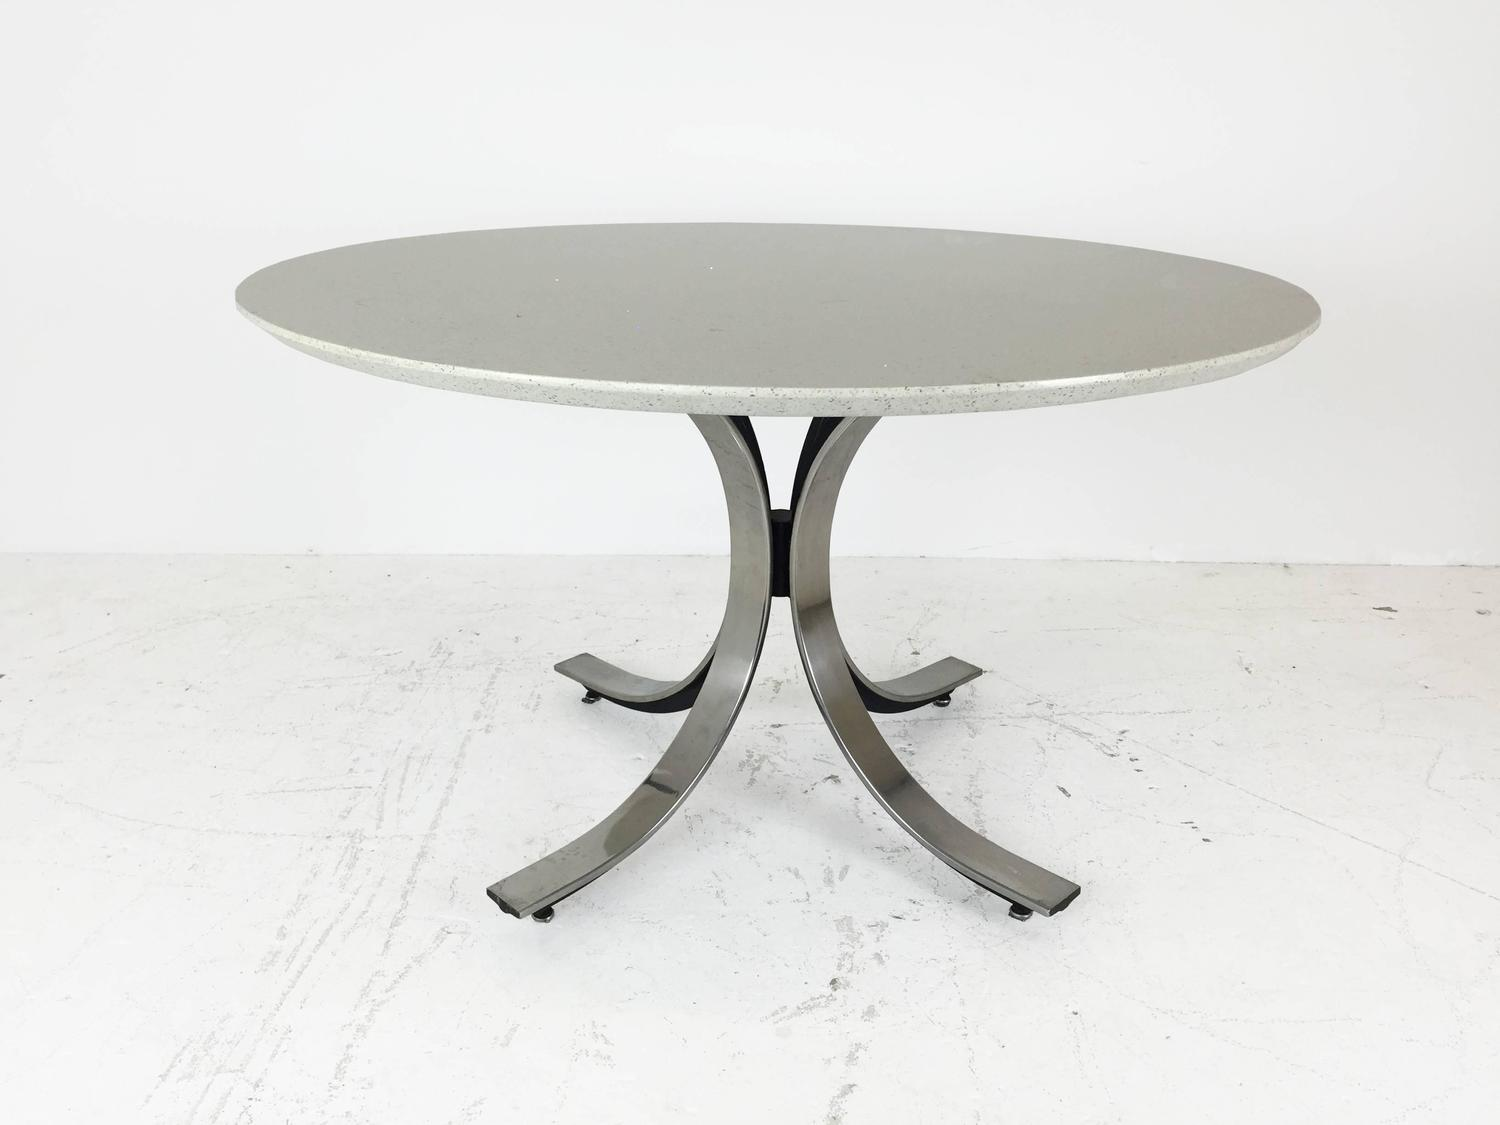 Four Legged Chrome Base Round Dining Table with White  : IMG1398copyz from www.1stdibs.com size 1500 x 1125 jpeg 69kB